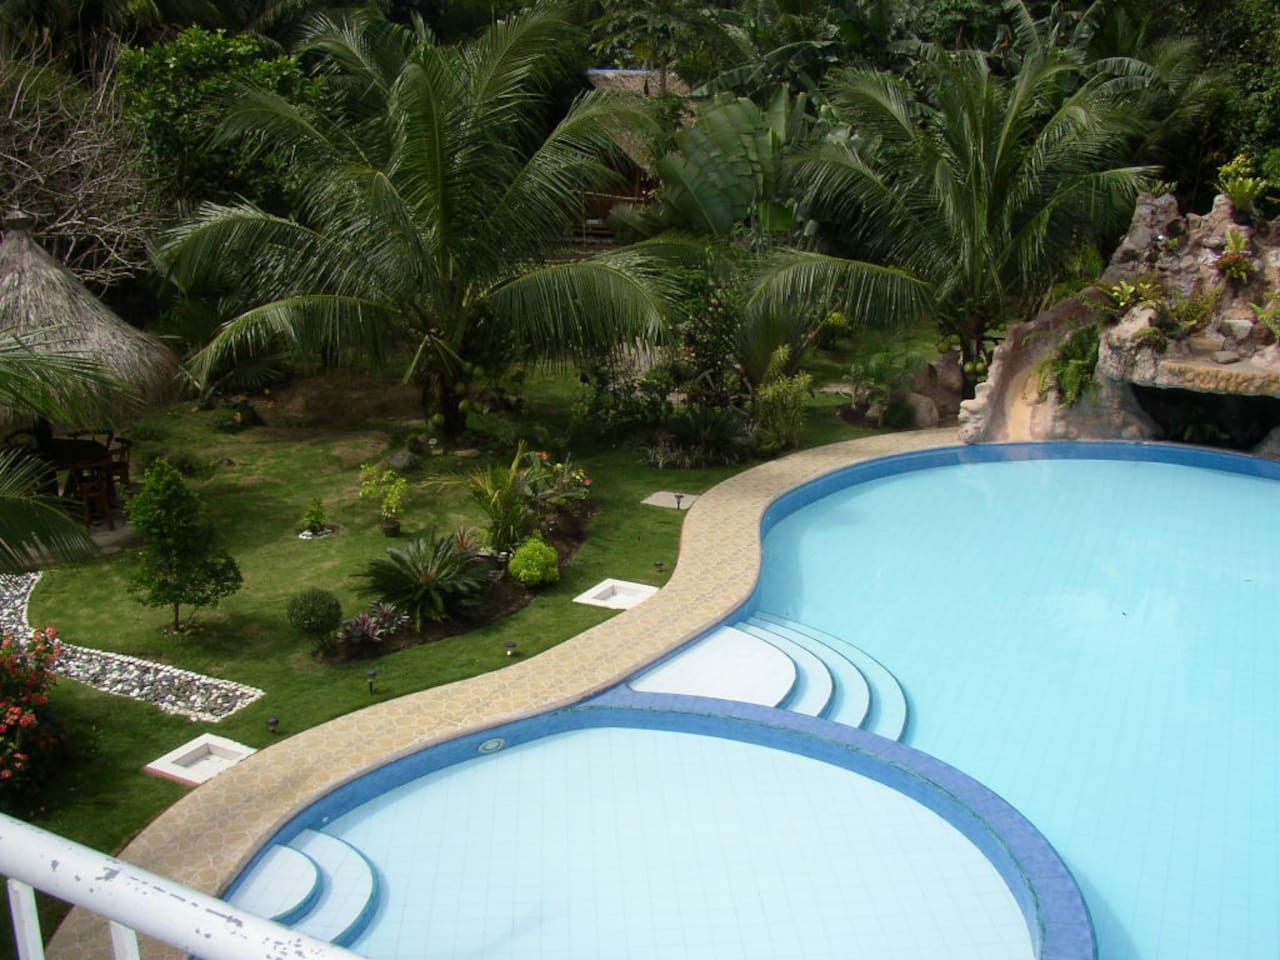 The pool in front of your guesthouse and room.